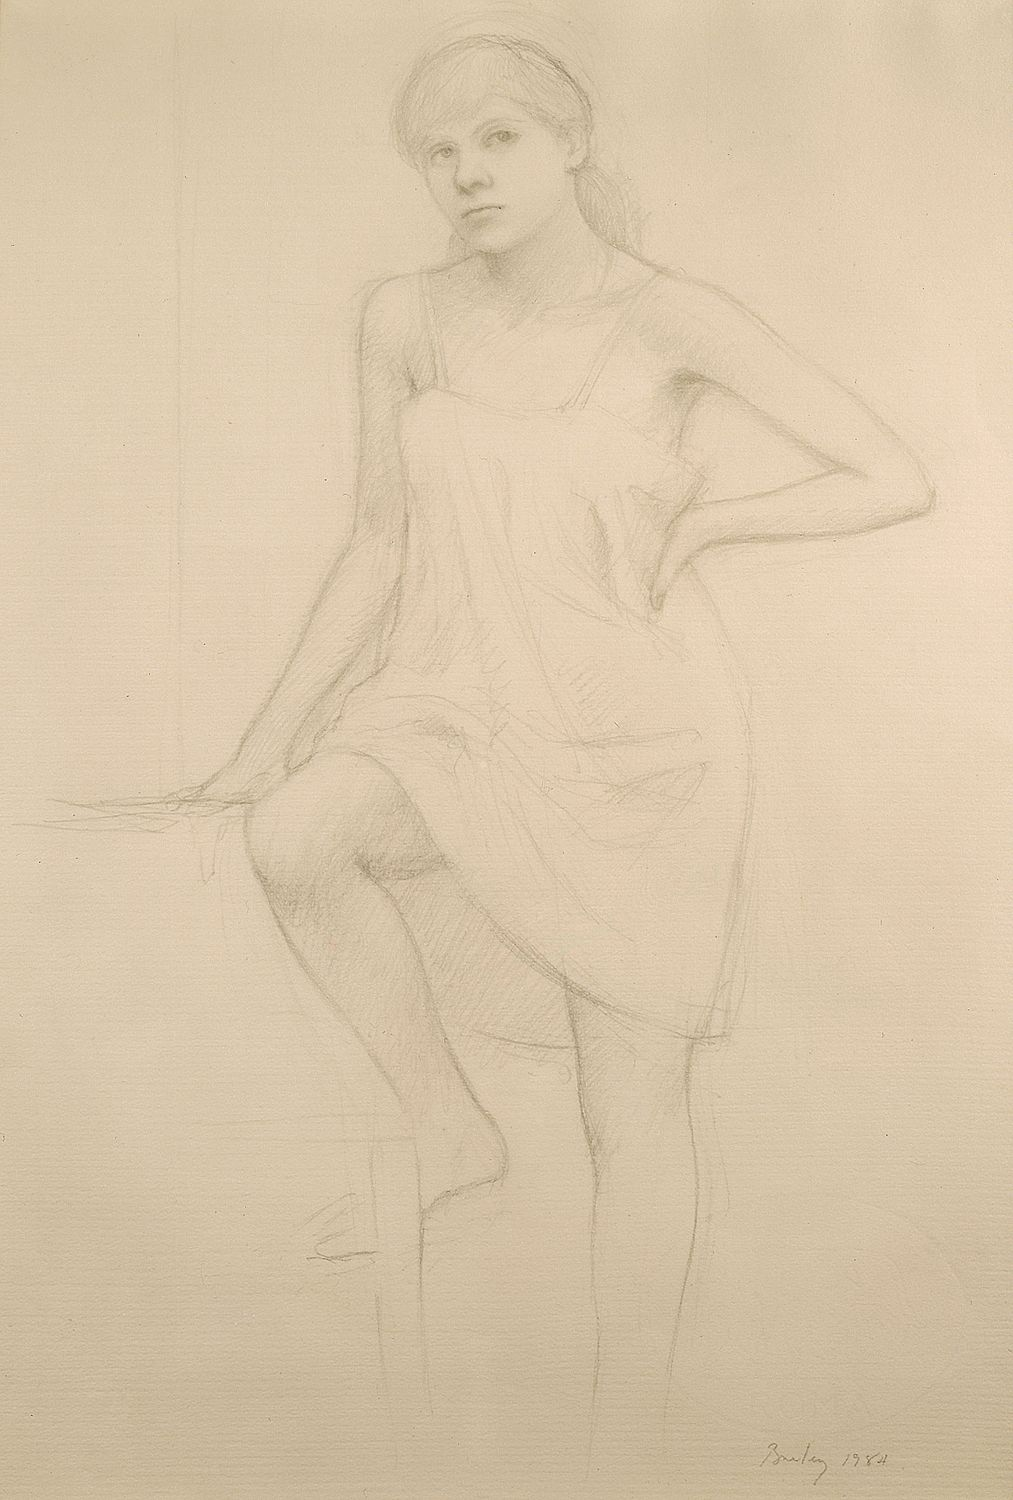 William Bailey, Model Seated with Slip, 1984, graphite on paper, 18 1/2 x 12 1/2 in.